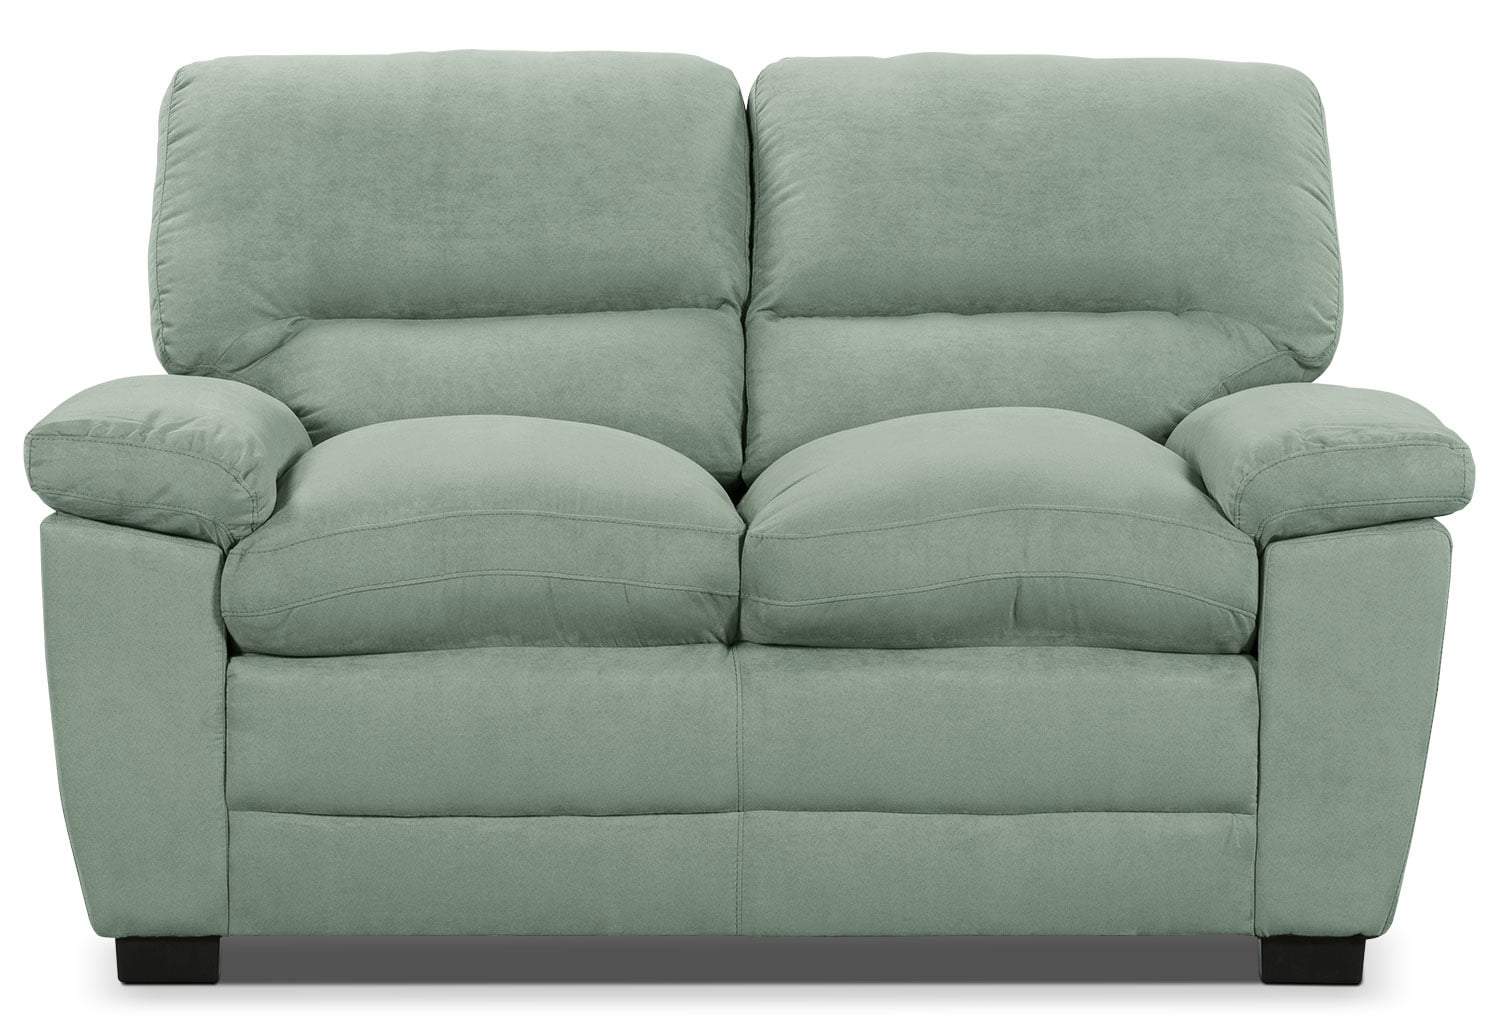 Living Room Furniture - Peyton Microsuede Loveseat - Blue Mist